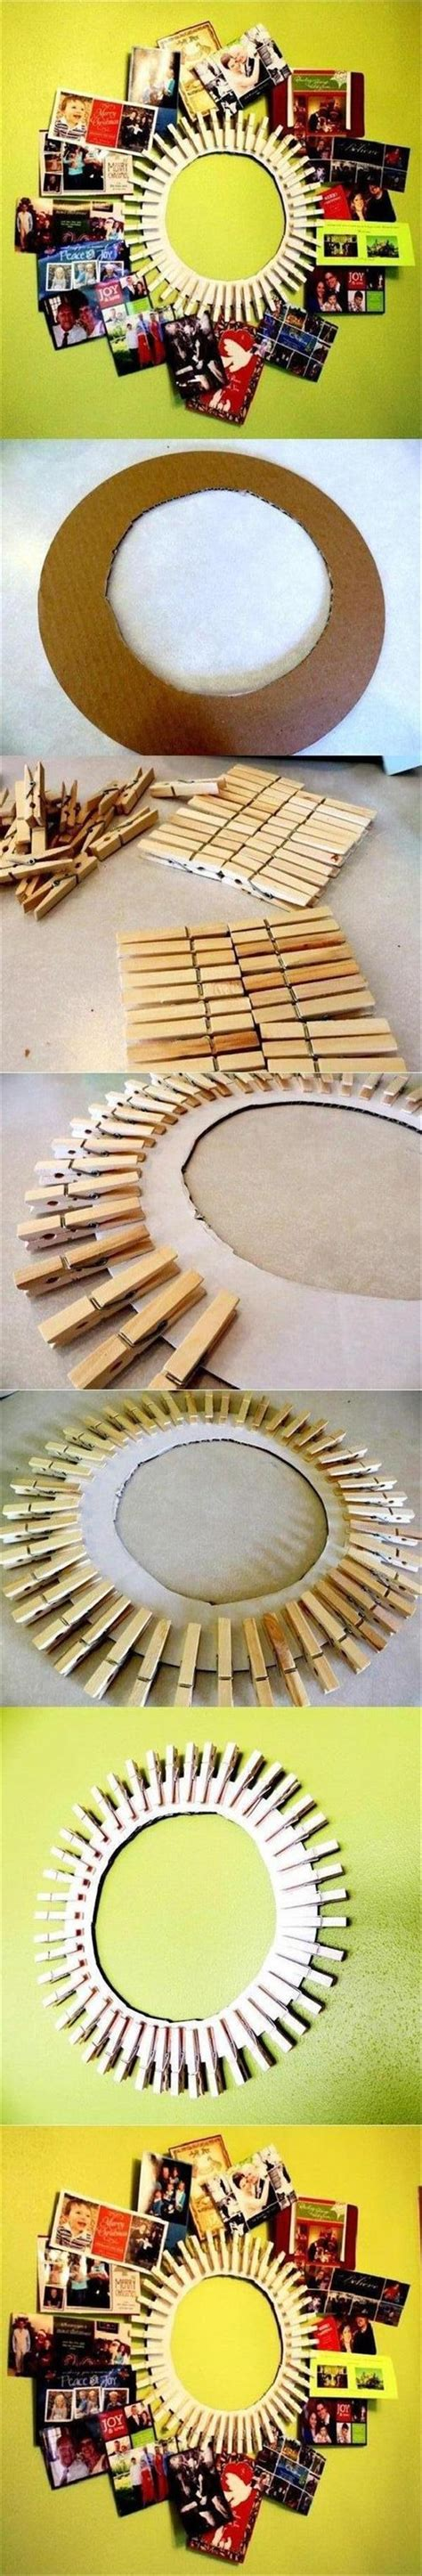 do it yourself craft projects do it yourself craft ideas 30 pics